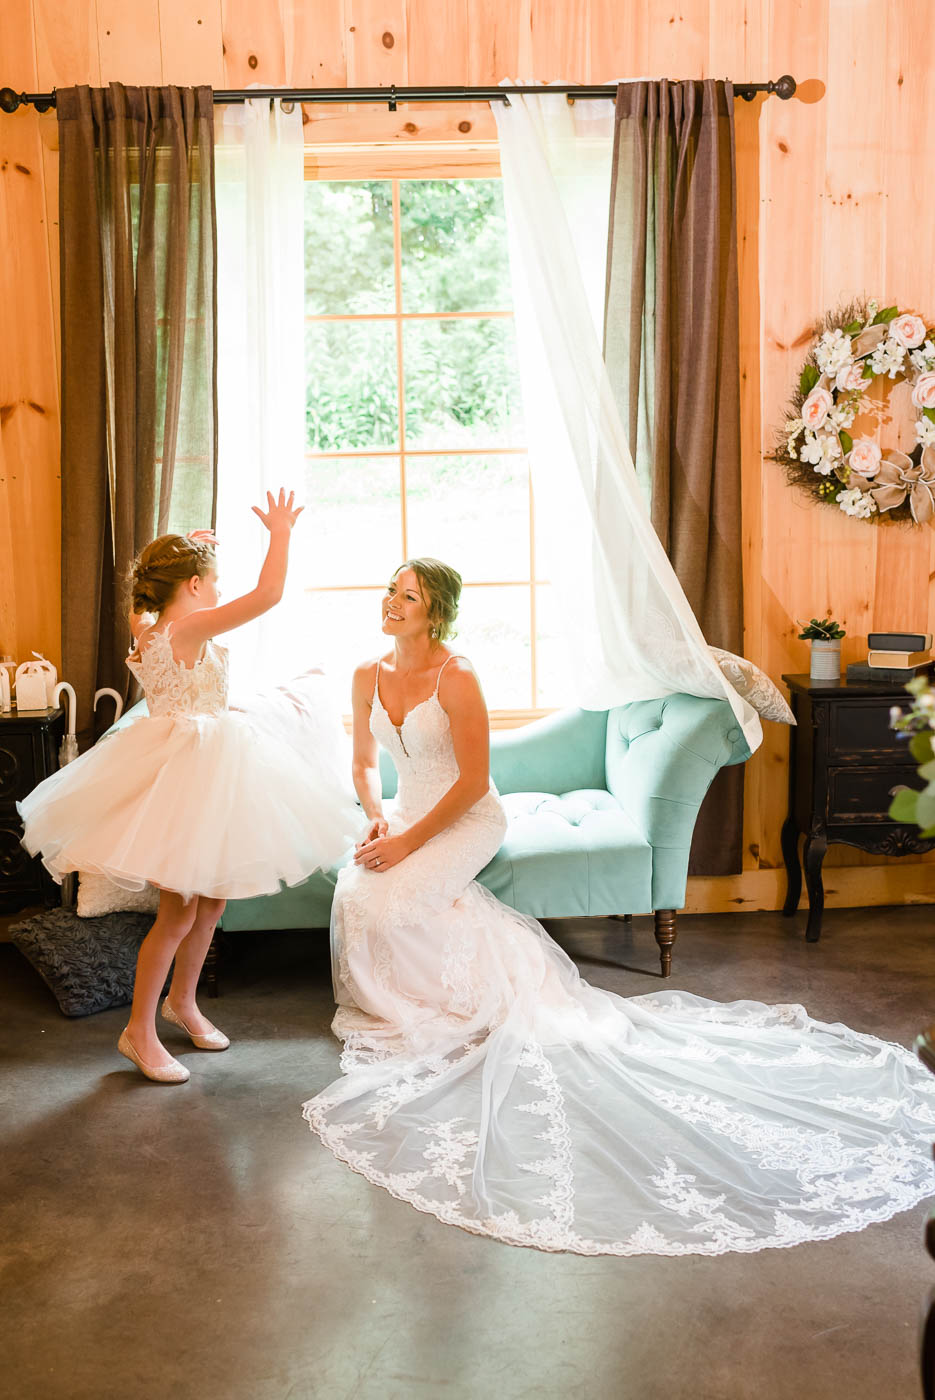 little girl in white dress talking to bride in white dress sitting on a couch